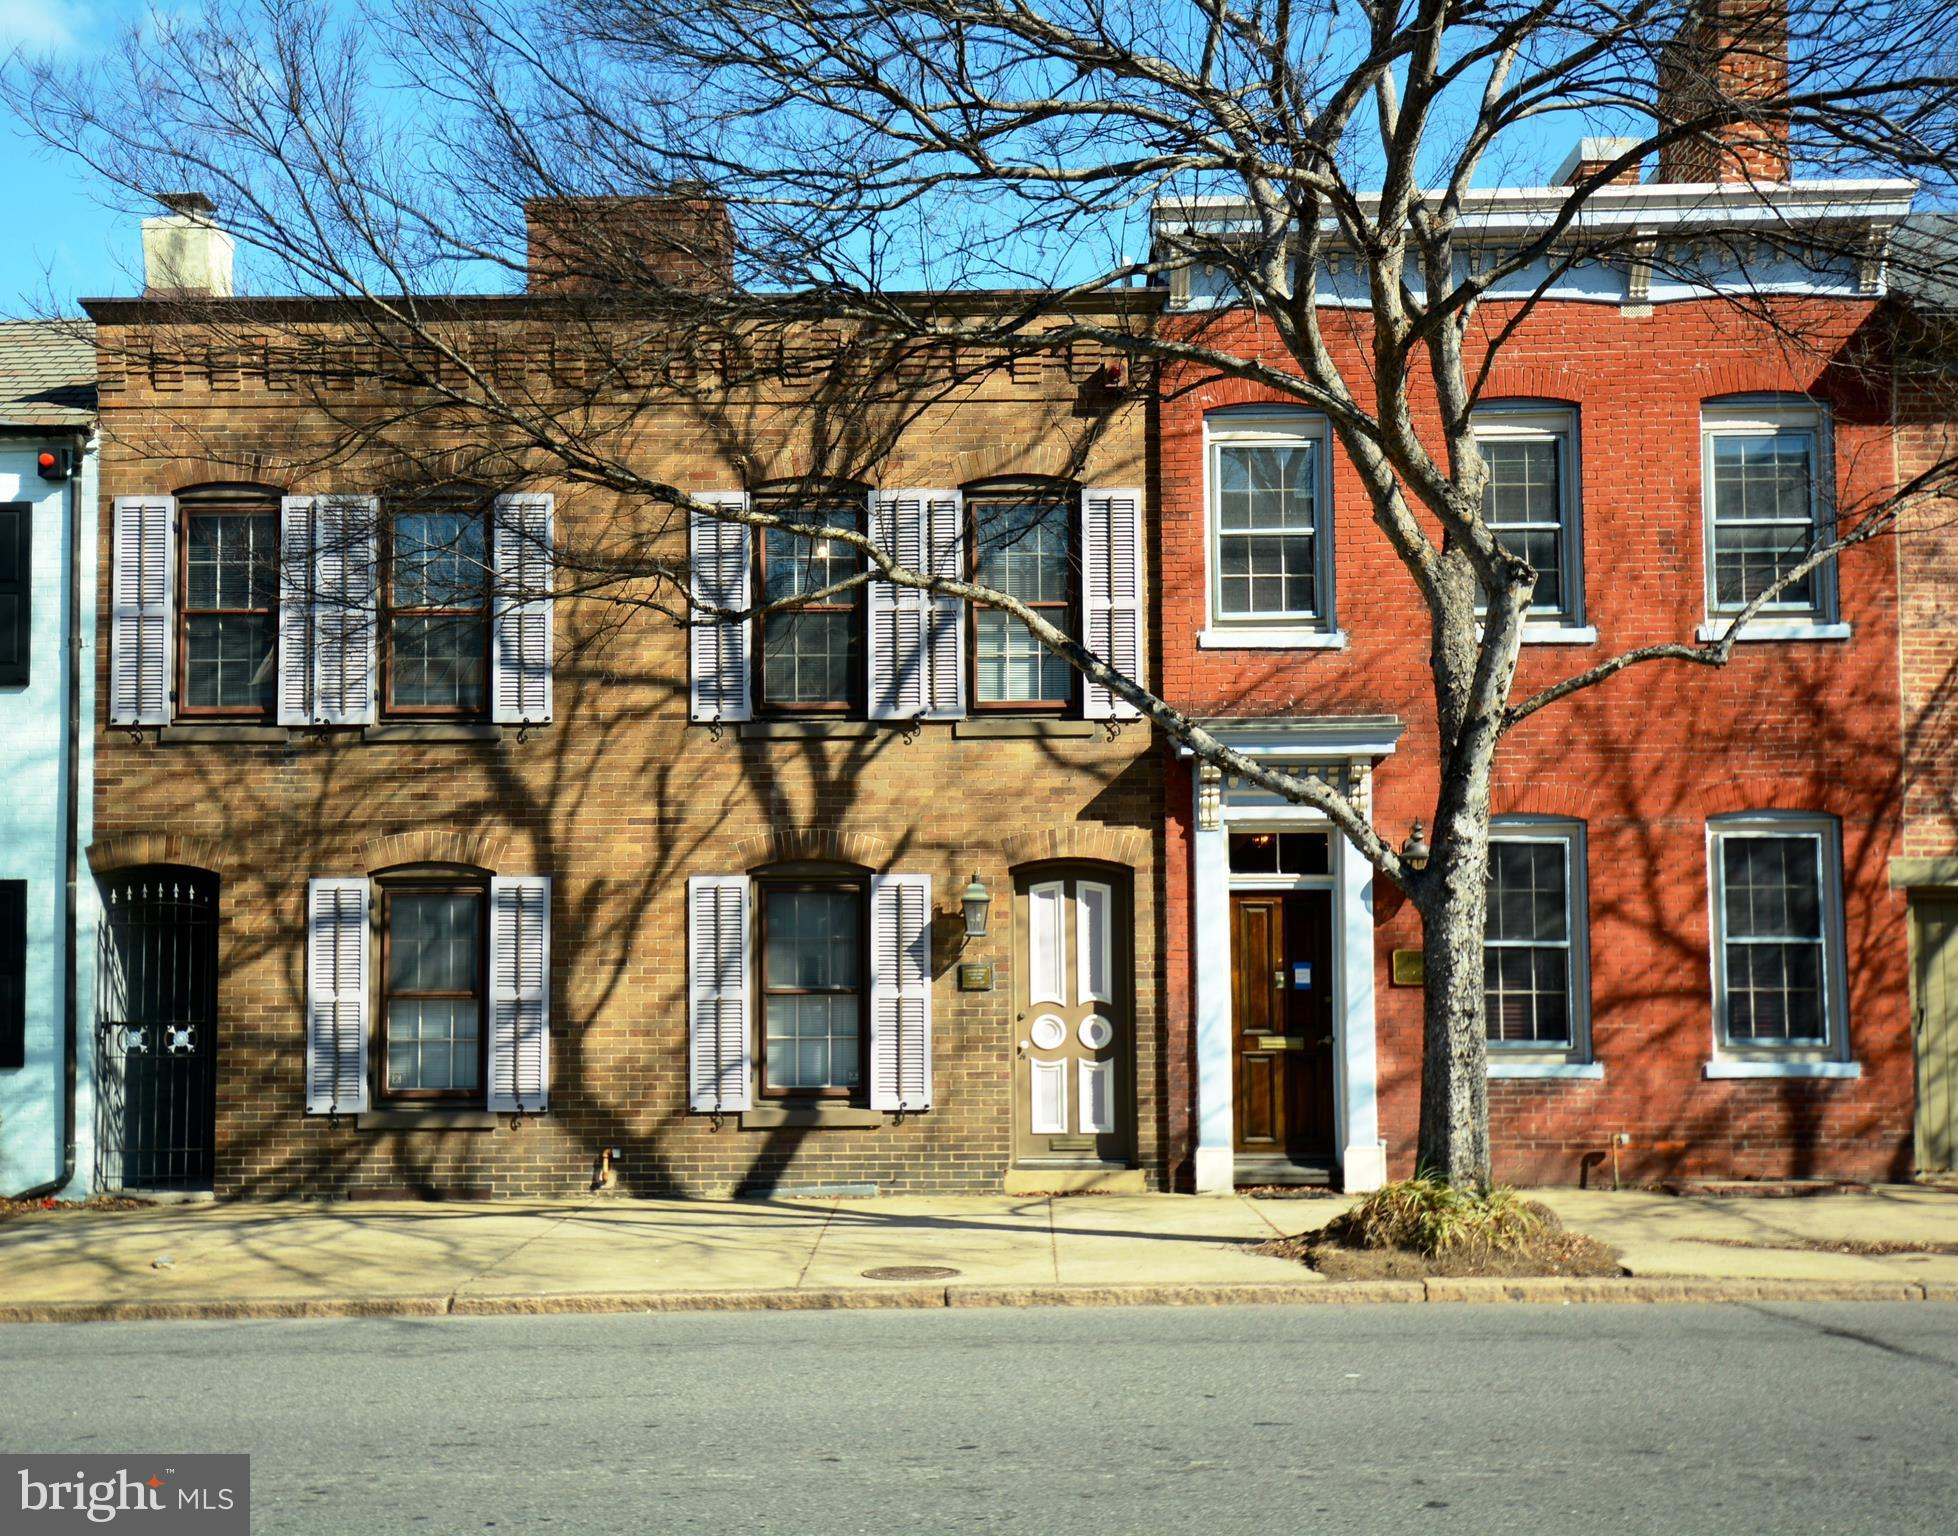 Adjacent 1011 and 1015 Duke St. for sale as unit (pics and BR/BA info for both properties, sep tax record for 1011). Total combined sq ft approx 2650.  Zoned CL, currently used as office (res. use permitted with City approval).  Interior access btwn properties on 3 levels. 3+ pkg spaces in rear off City alley, lg. yard. Walk to metro, 2 blocks from King St. Unique oppty!